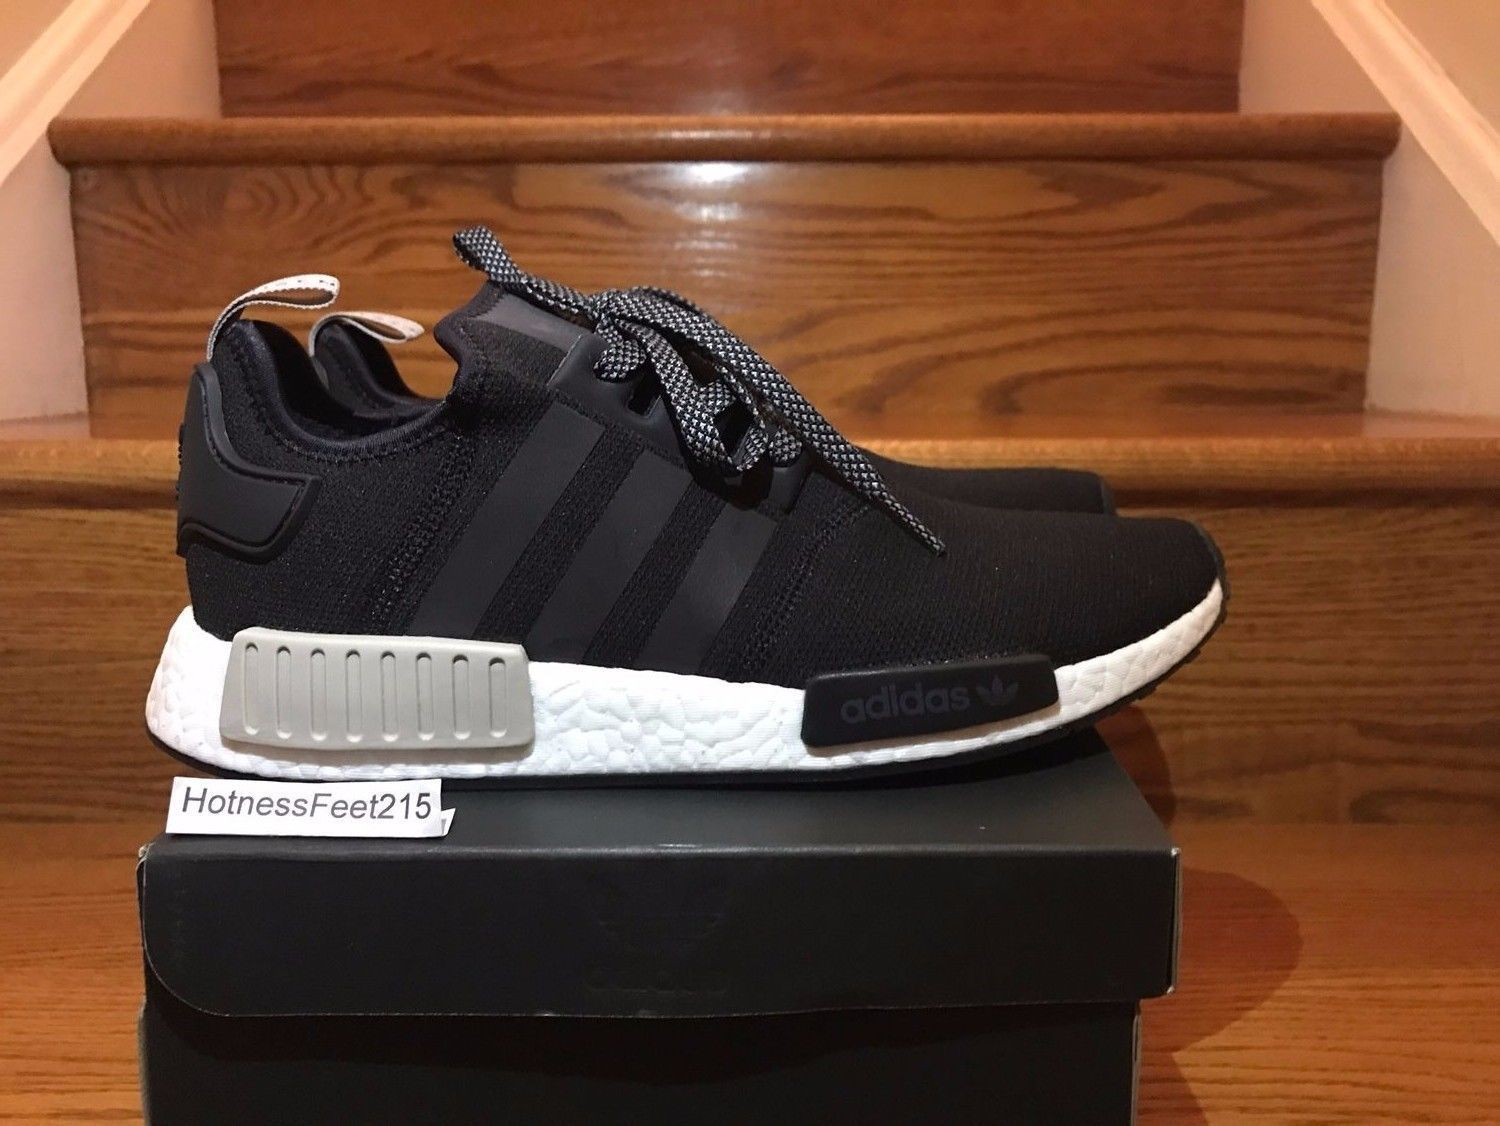 Adidas NMD R1 Runner Nomad Boost S76847 Black Tan White Men Size:8-13